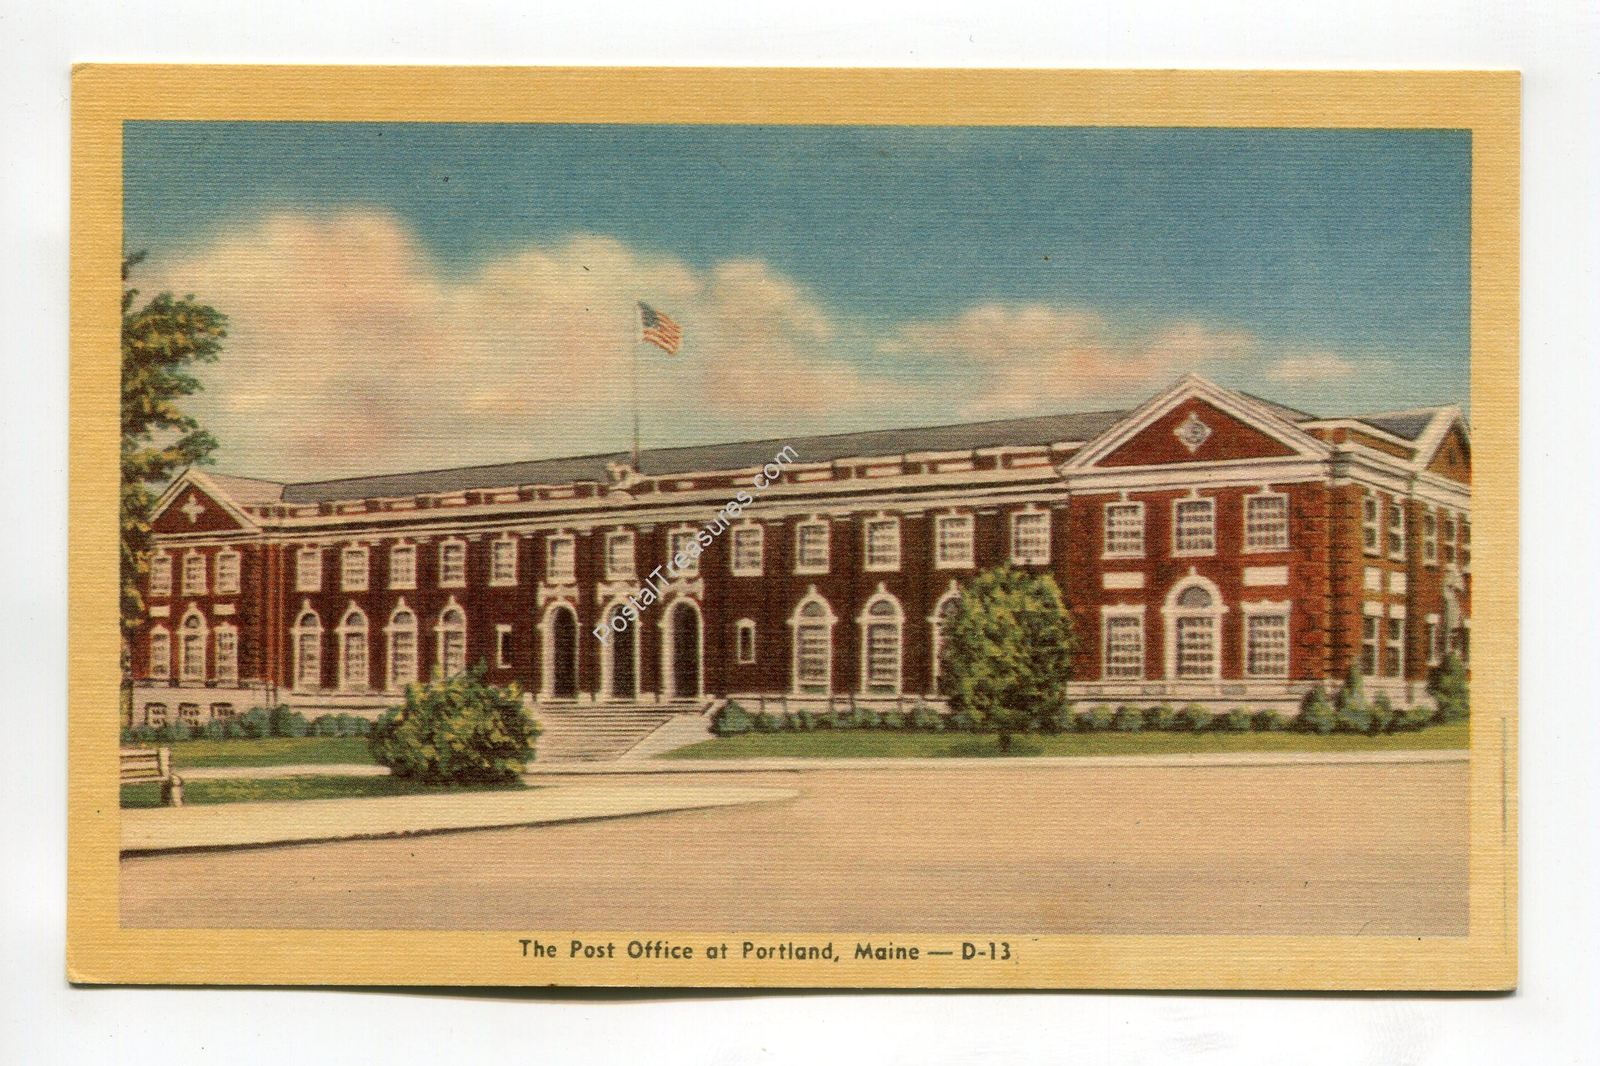 Primary image for Post Office at Portland Maine